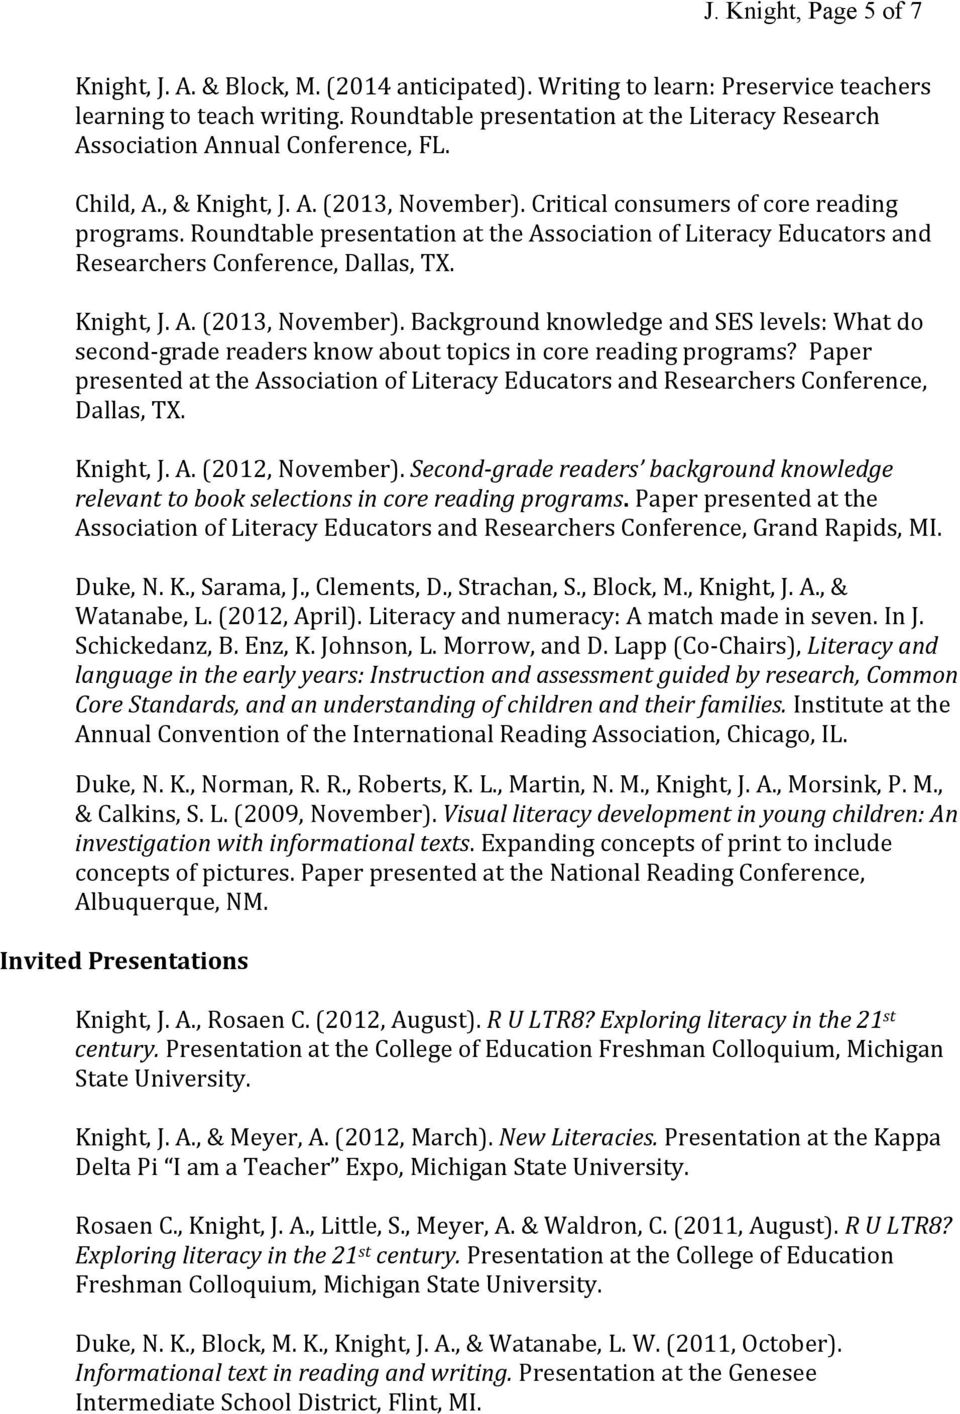 Roundtable presentation at the Association of Literacy Educators and Researchers Conference, Dallas, TX. Knight, J. A. (2013, November).